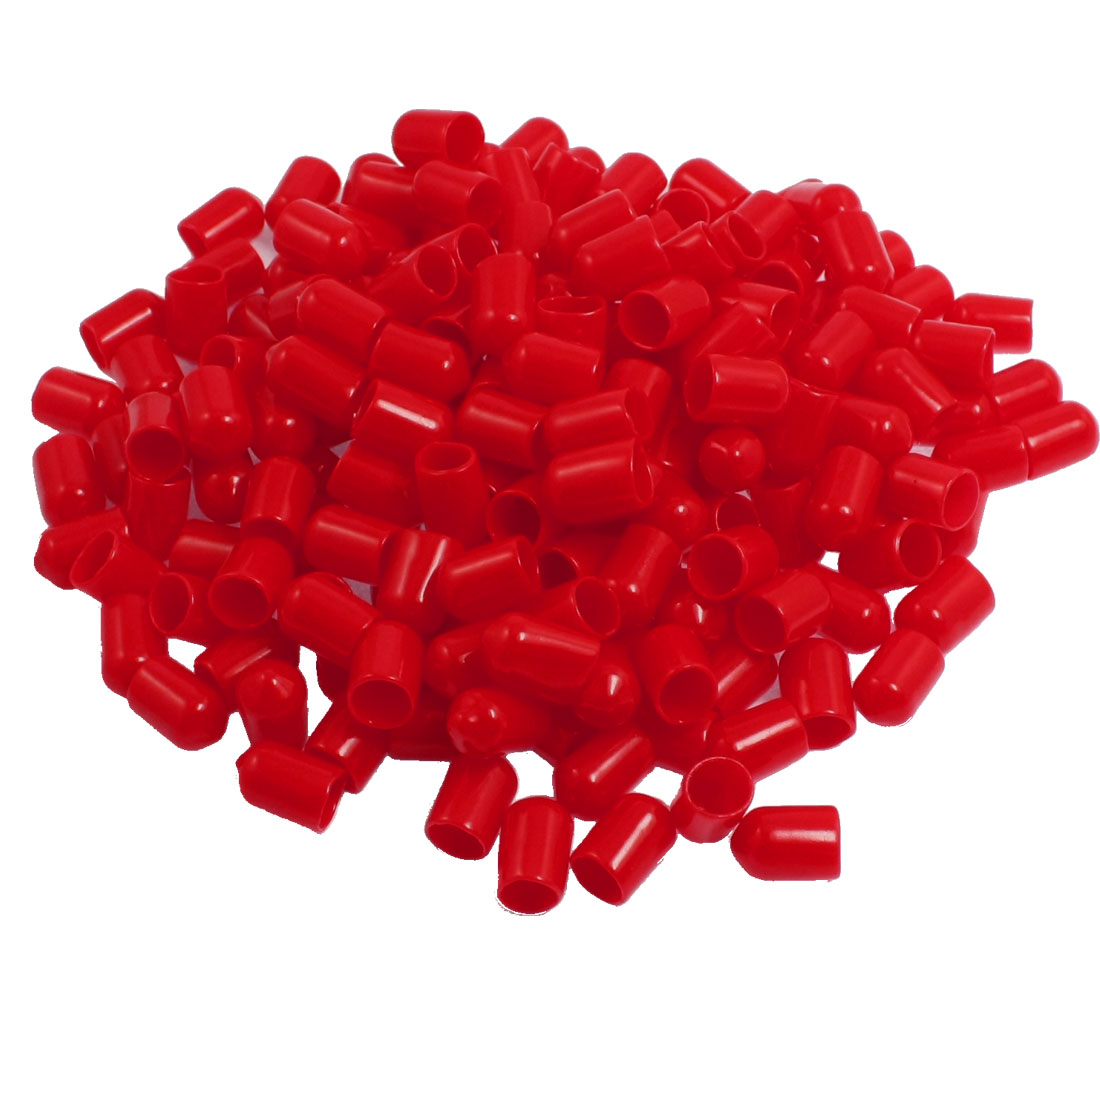 200 Pcs 14mm Height 8mm Inner Dia Round Tip Red PVC Insulated End Caps